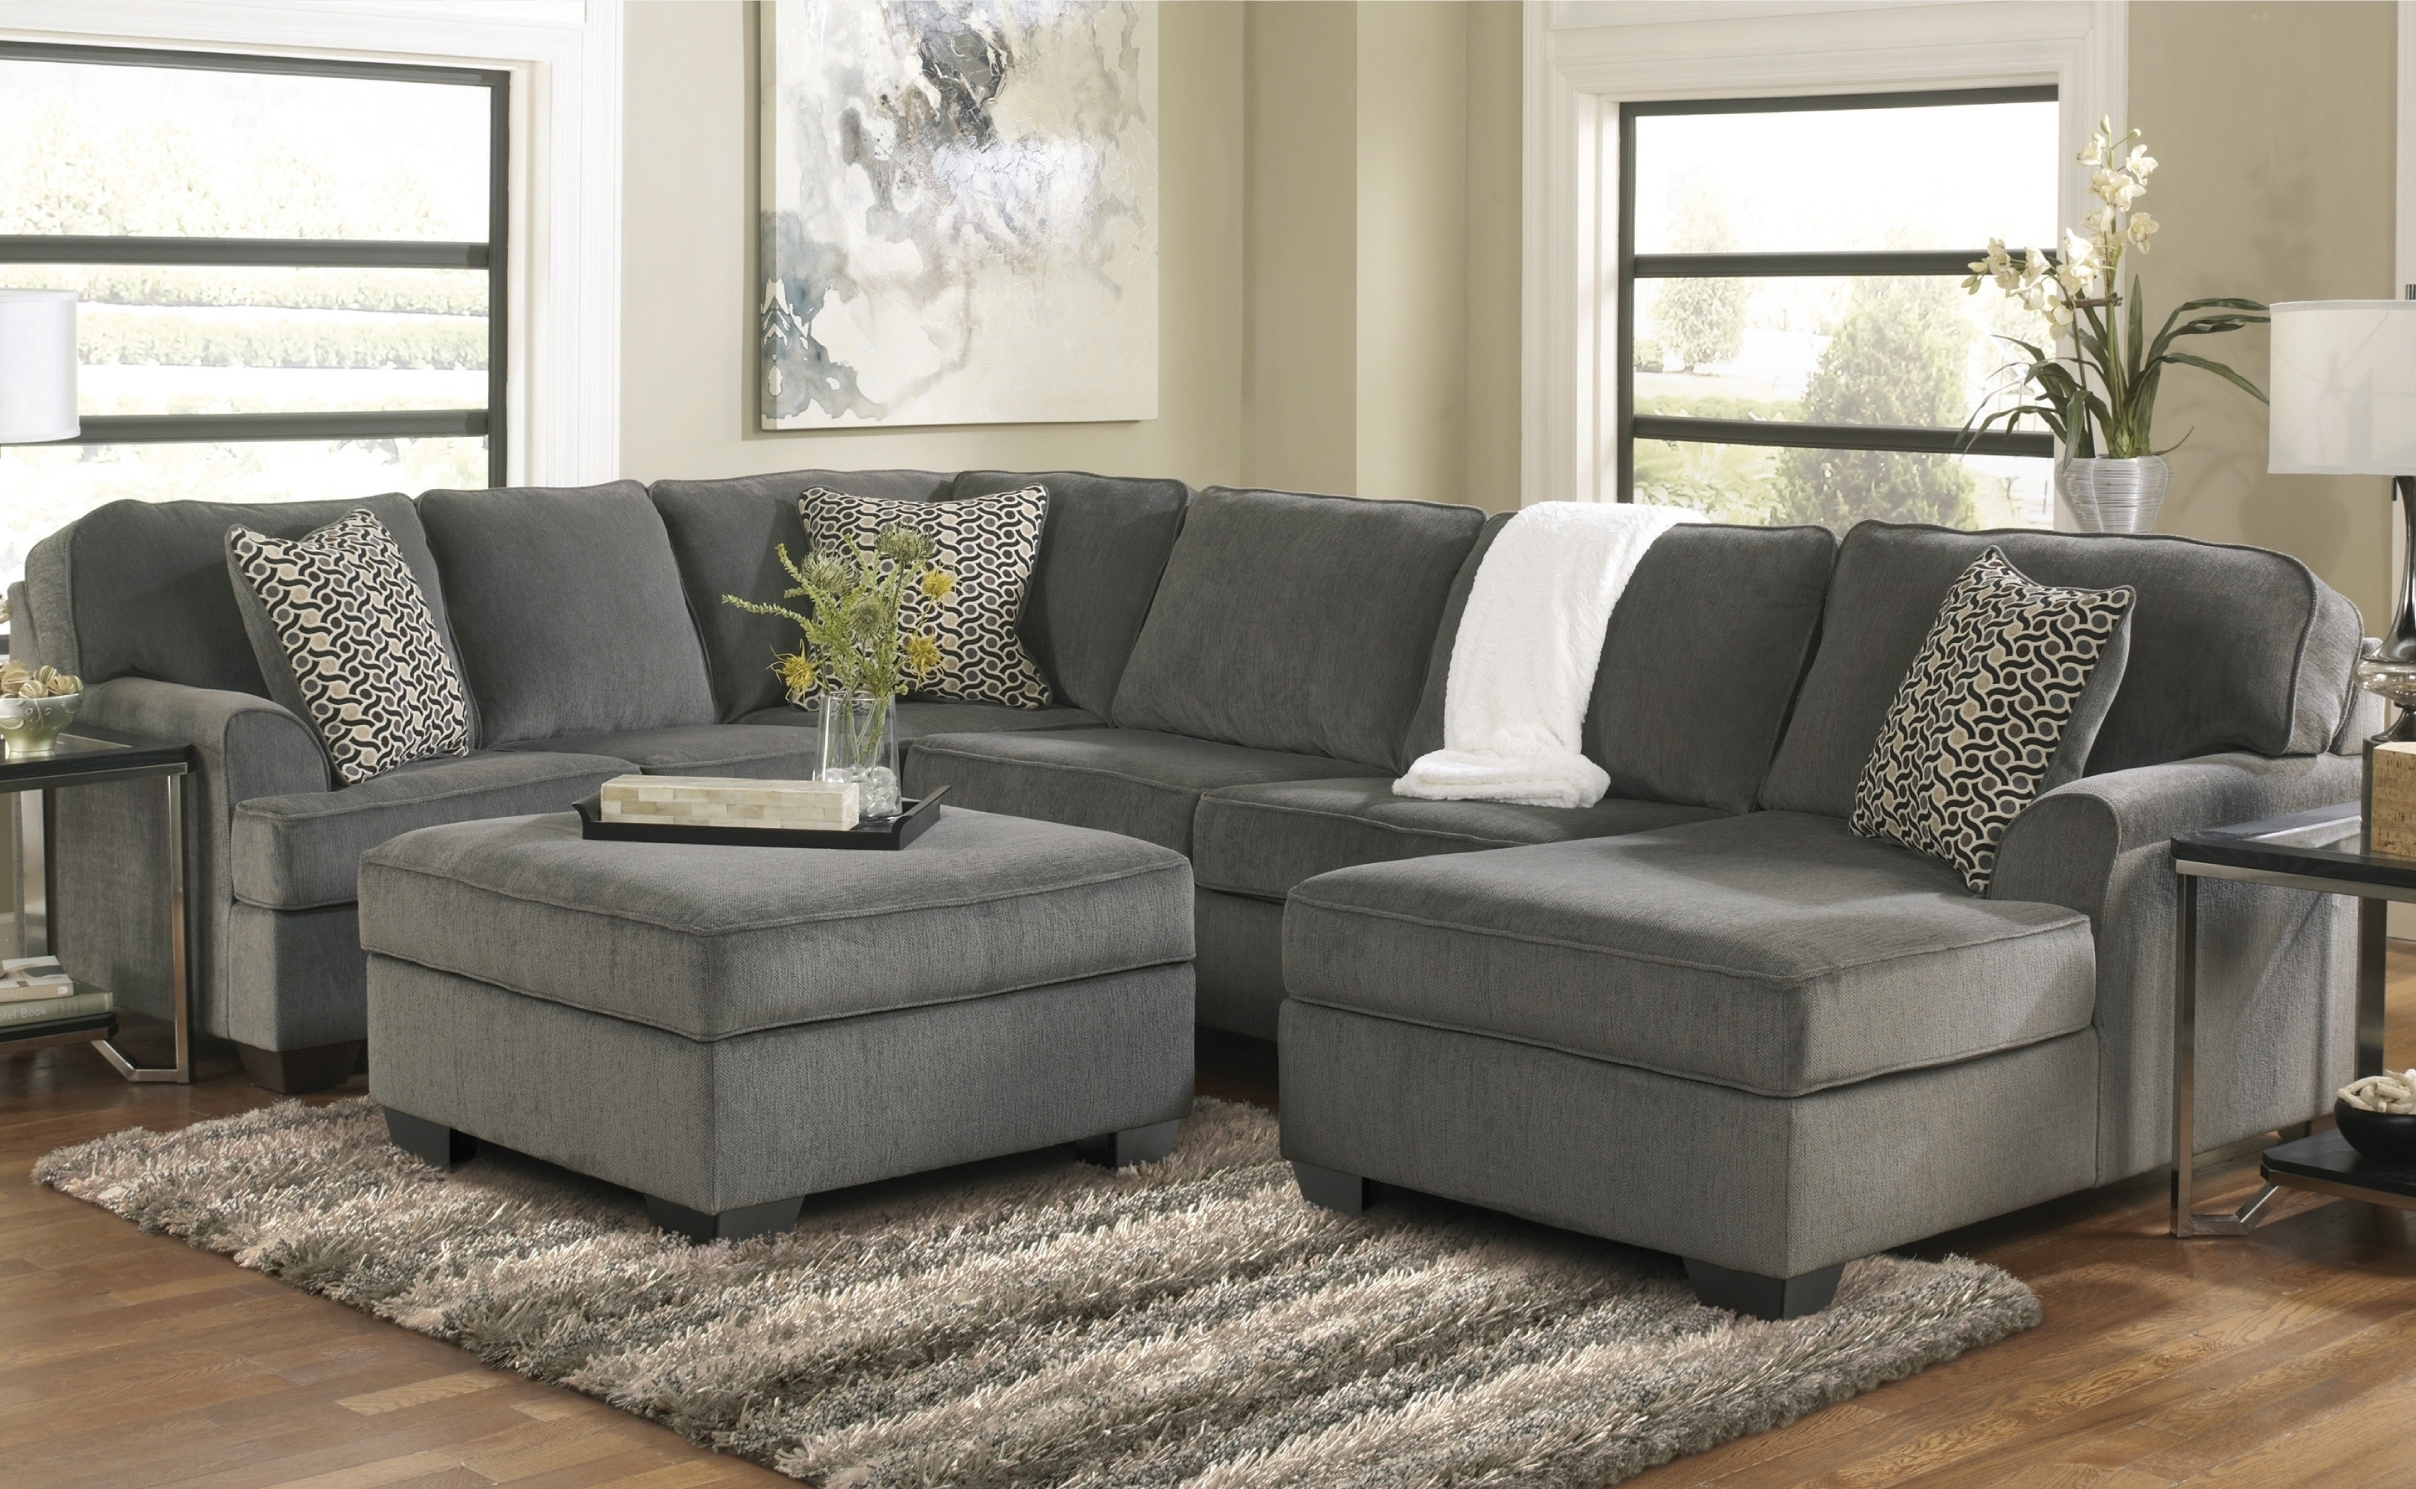 Leather Sectional Sofas Raleigh Nc | Ezhandui In Raleigh Nc Sectional Sofas (View 3 of 10)